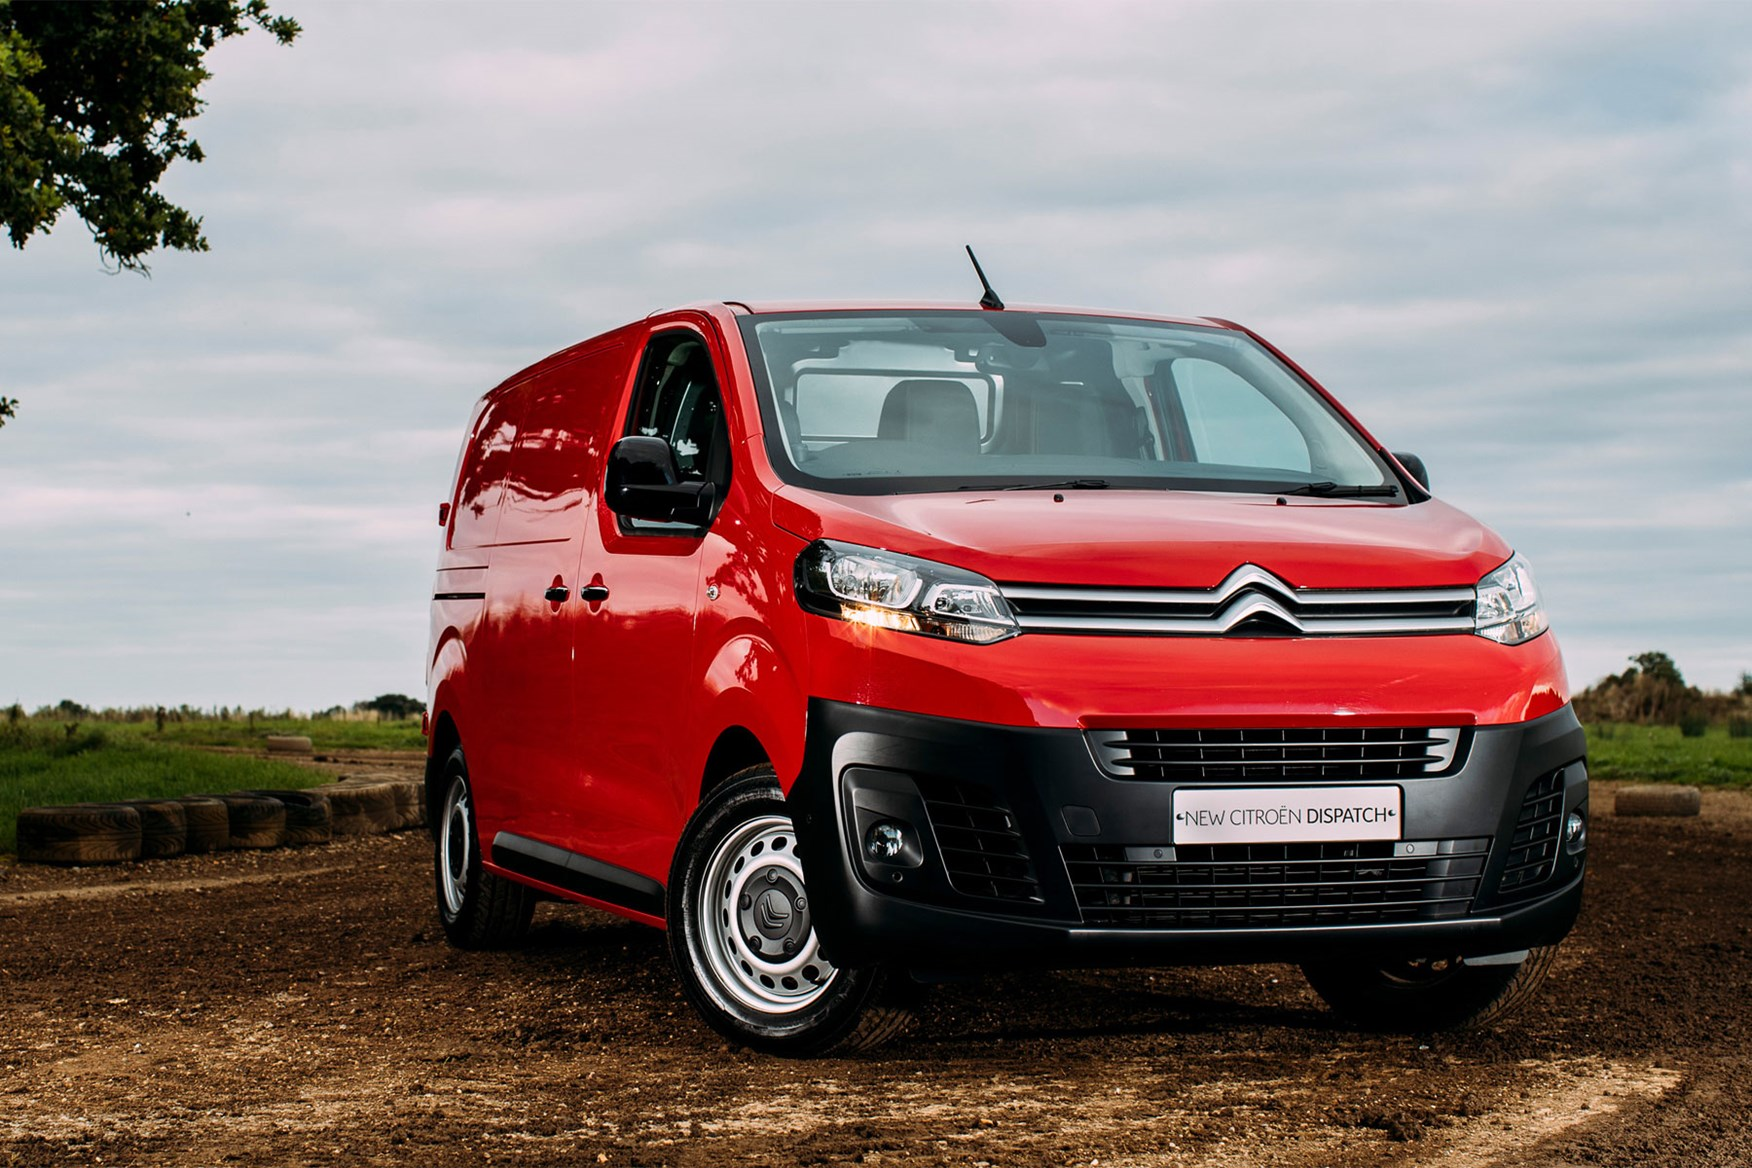 Citroen Dispatch review - front view, red, parked in muddy field